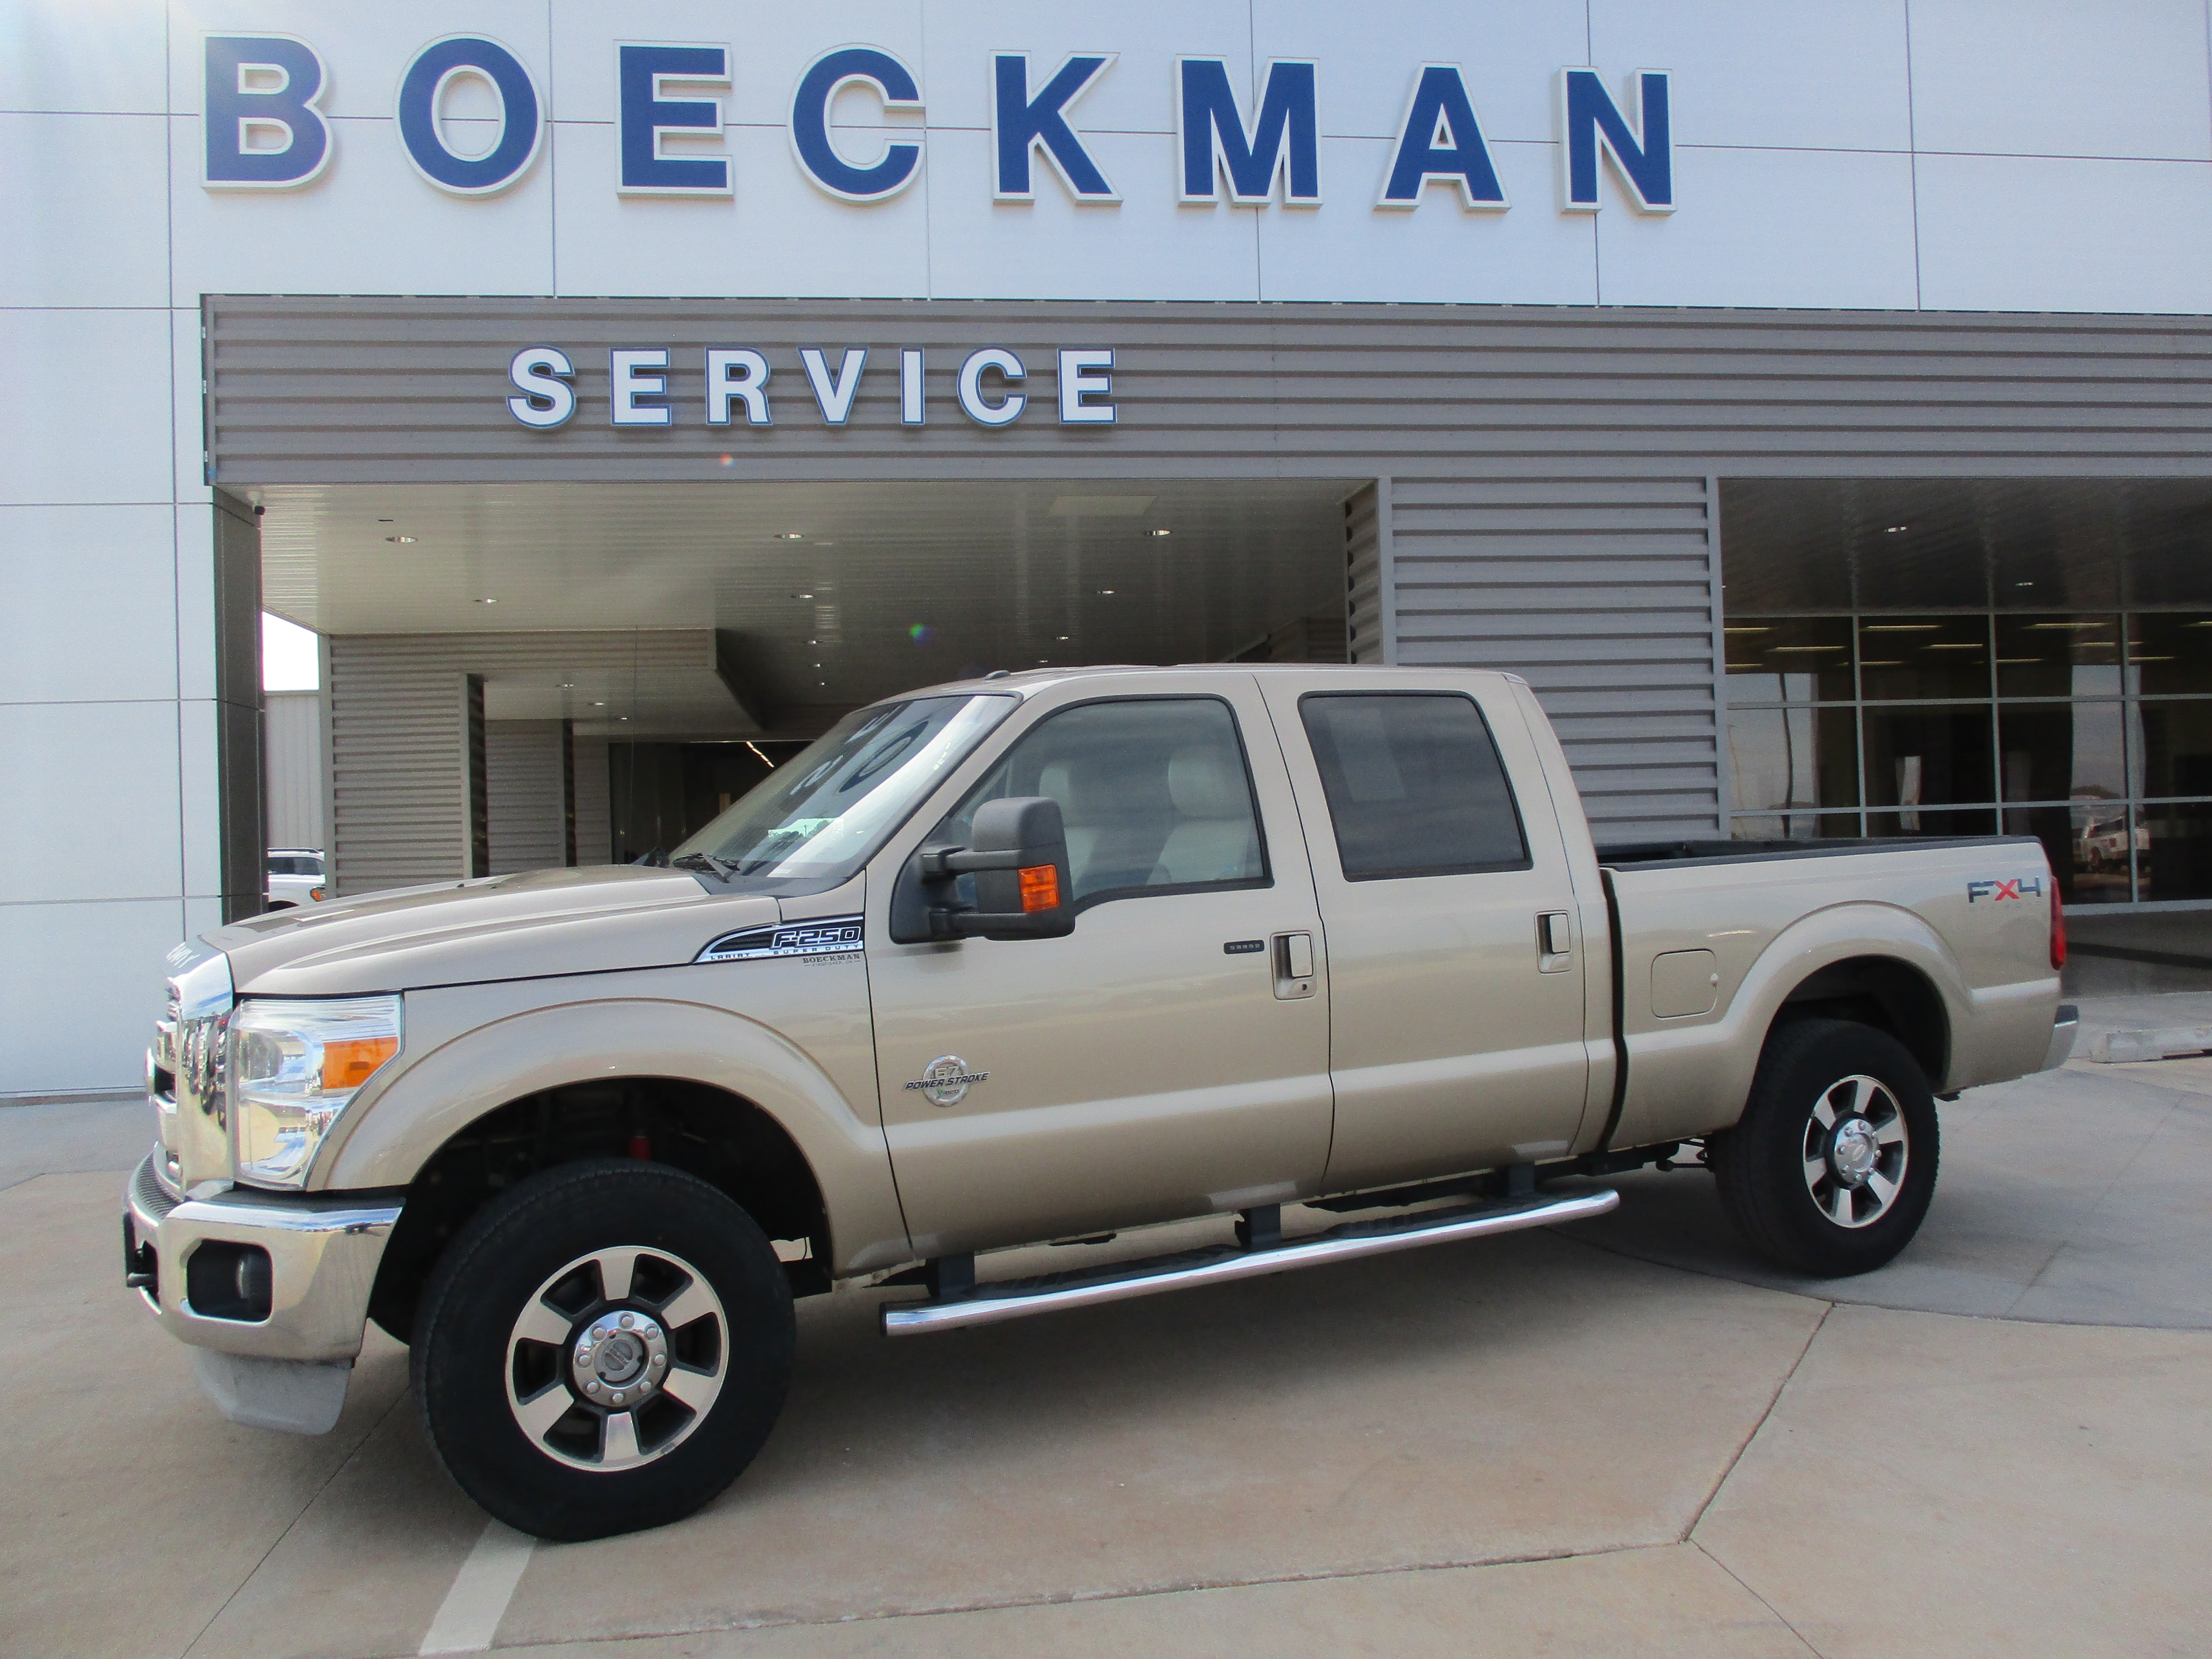 2011 Ford F-250 Crew Cab Truck